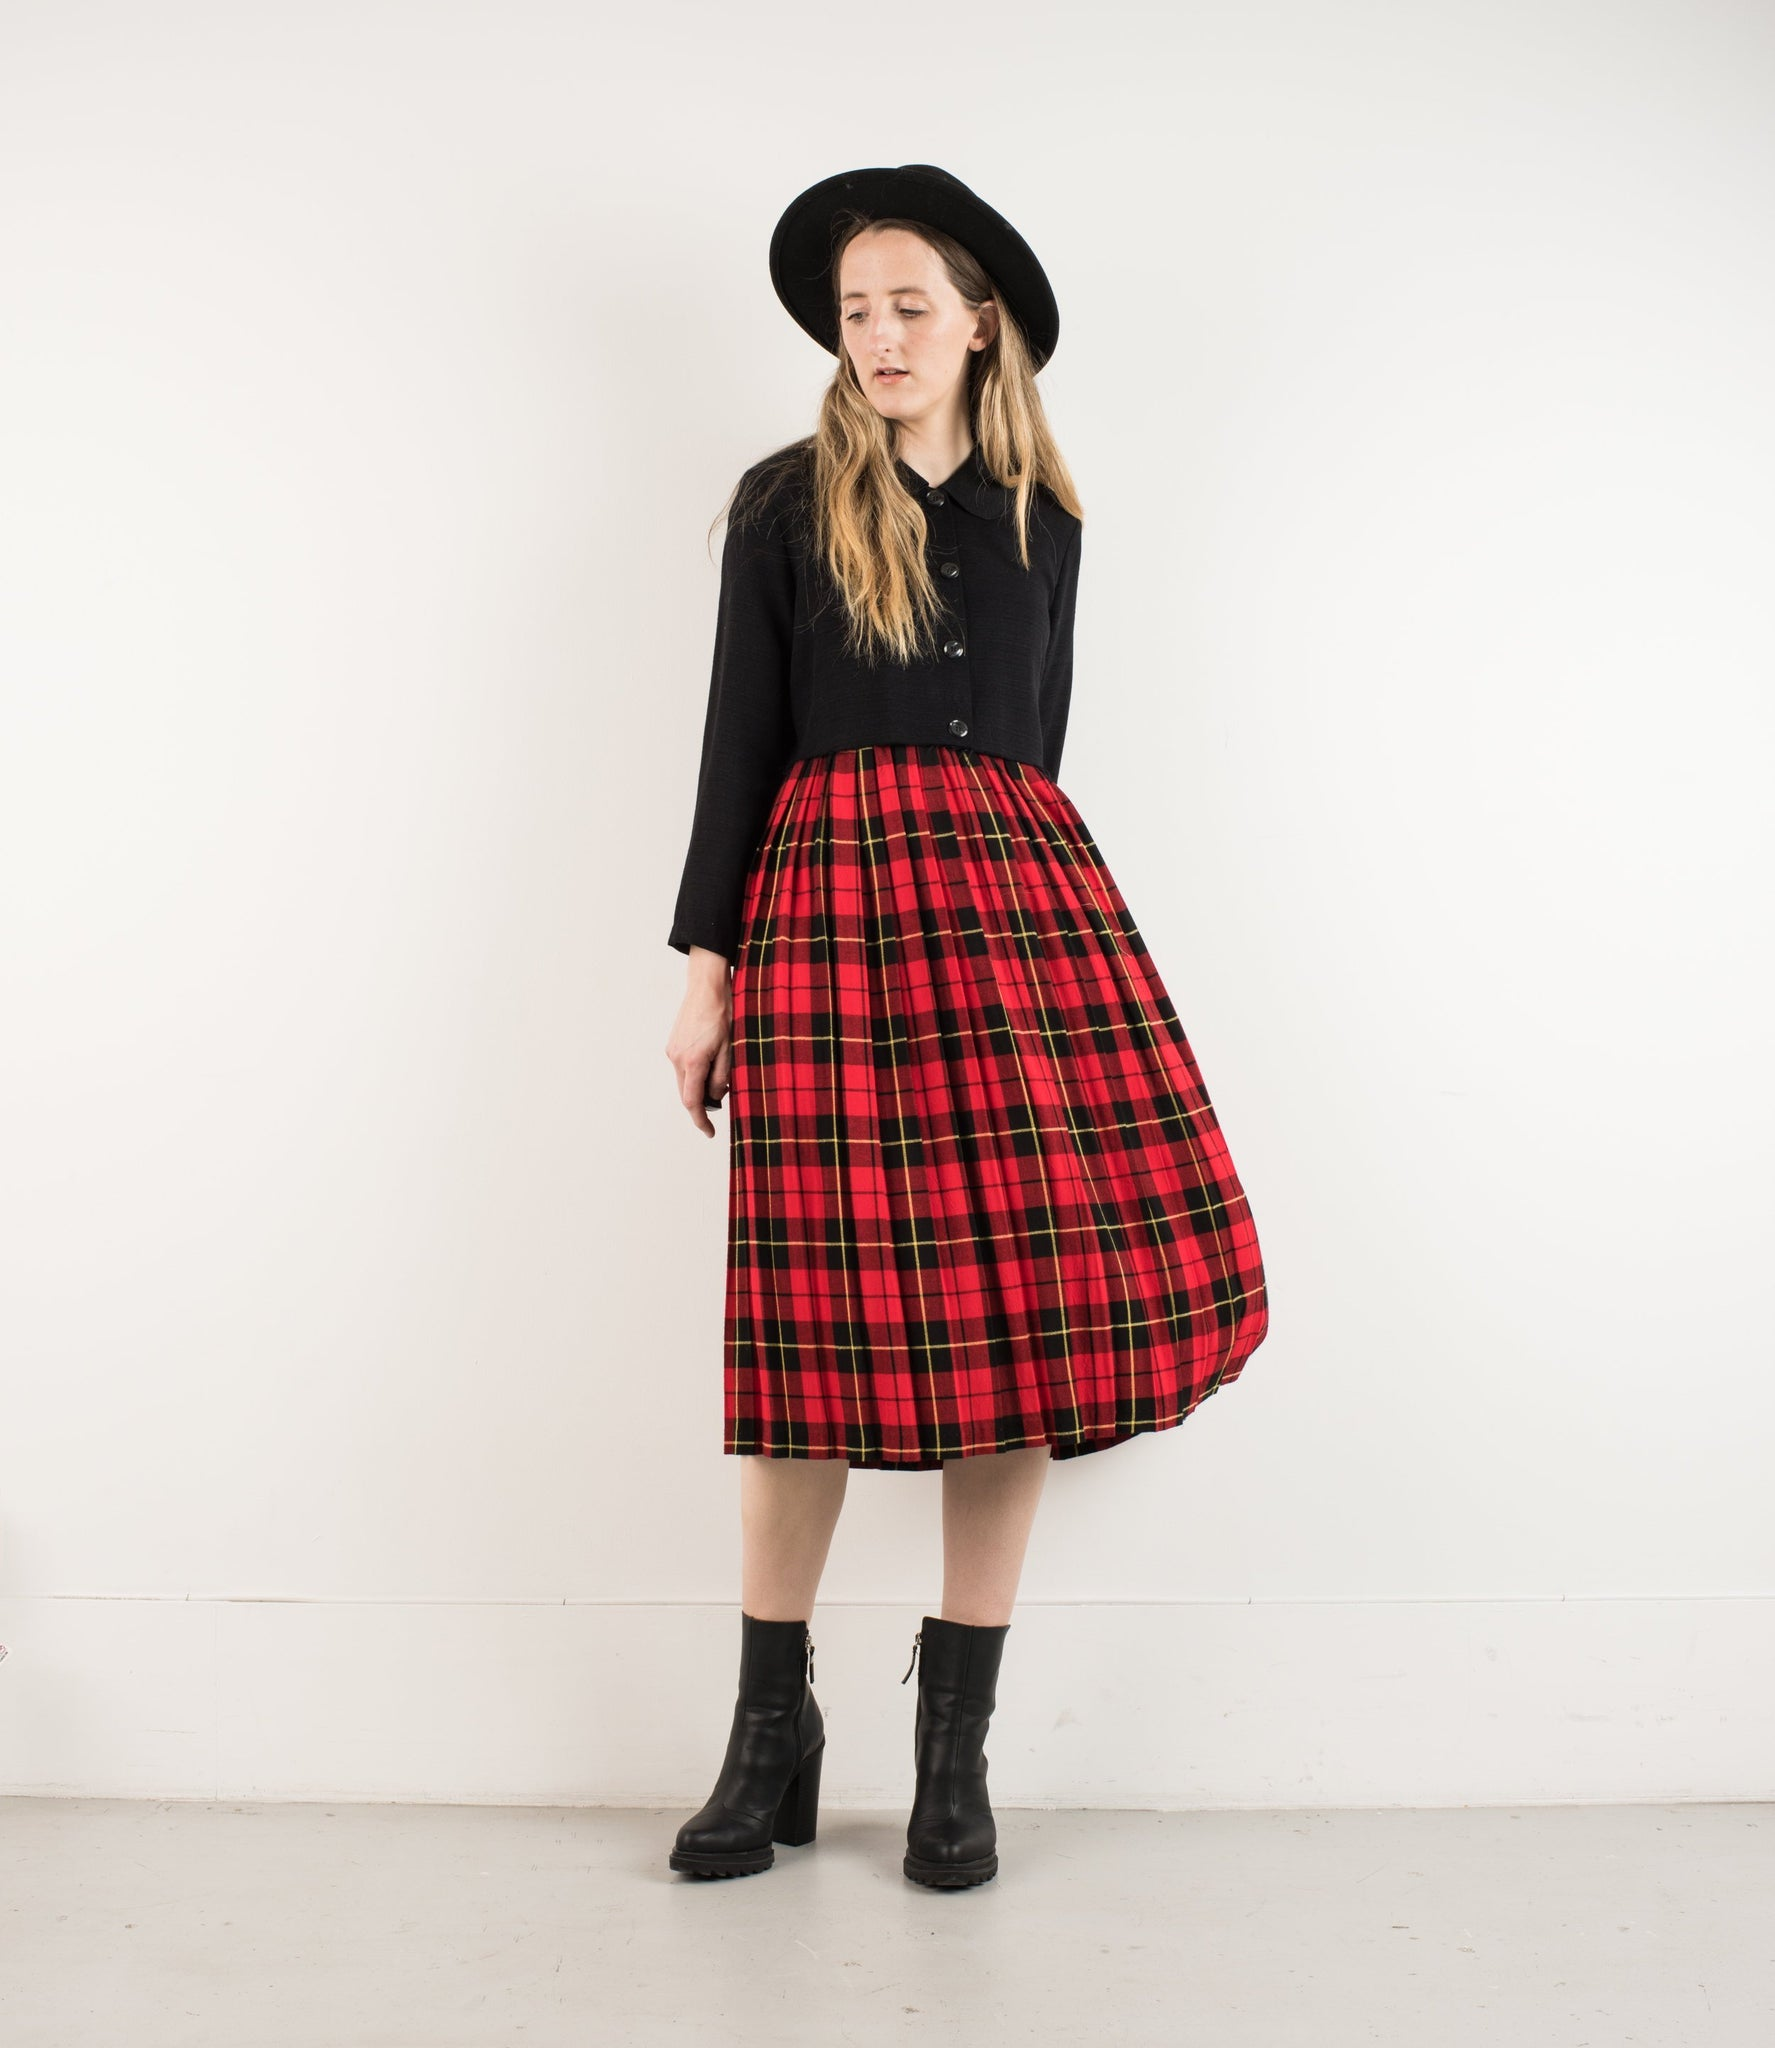 Vintage Plaid Pleated Red and Navy Plaid School Girl Skirt / S - Closed Caption